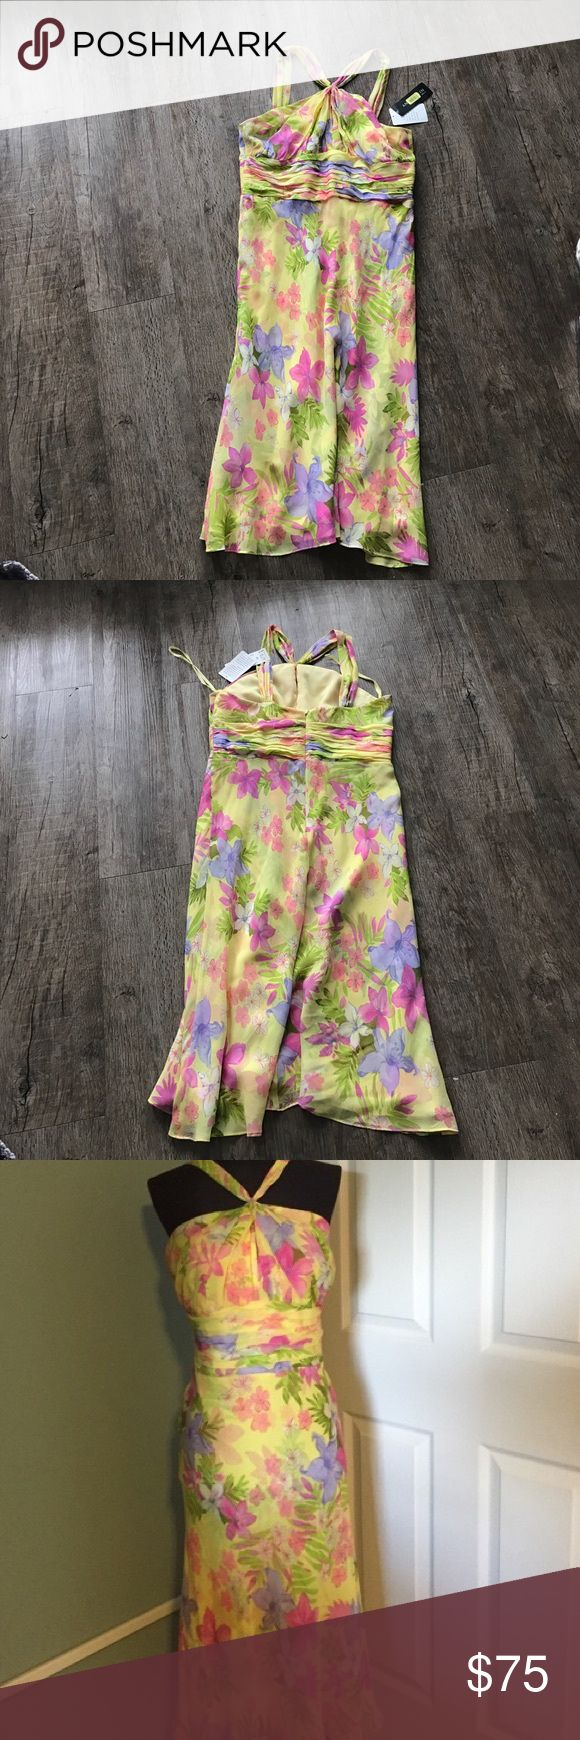 """Ann Klein Floral Multi Color Spring Dress Brand New with tags! Perfect for upcoming spring/summer season! Zipper in back. Bust - 18"""", Length - 41"""", Waist 17"""". Size 14 Ann Klein Dresses"""